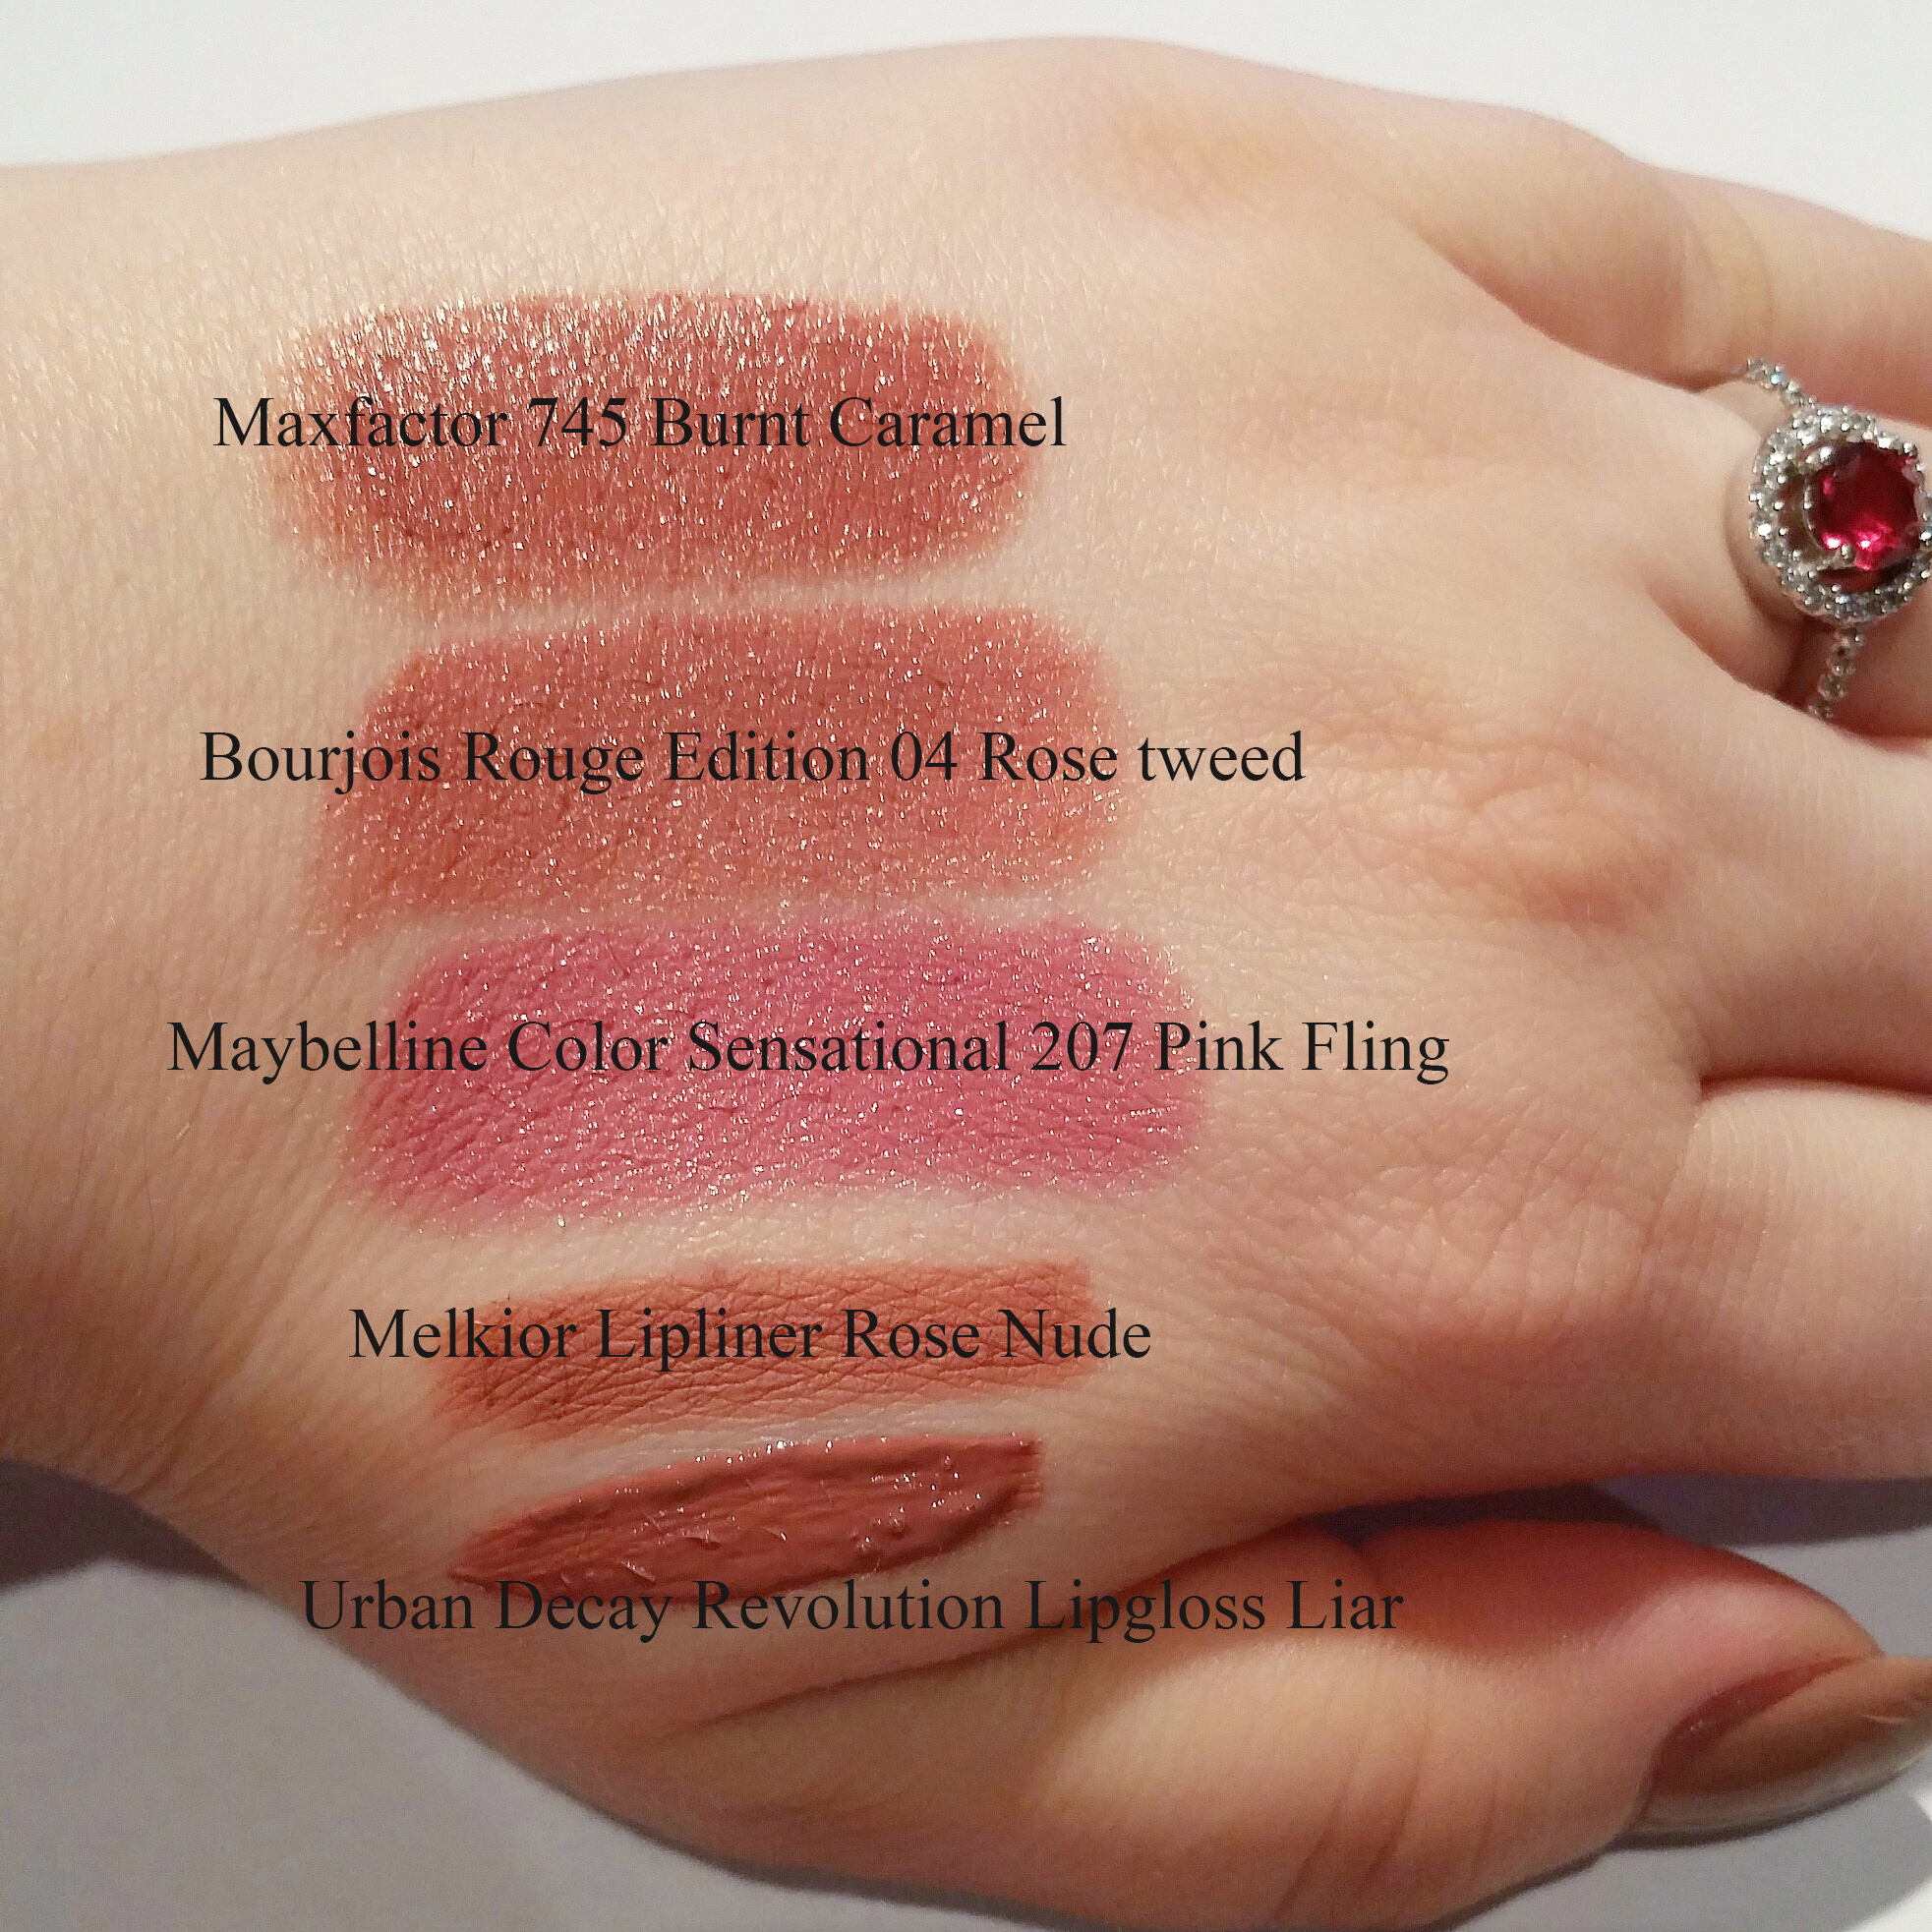 swatches maxfactor burnt caramel maybelline pink fling bourjois rouge edition rose tweed melkior urban decay revolution lipgloss liar - beautyandatwist